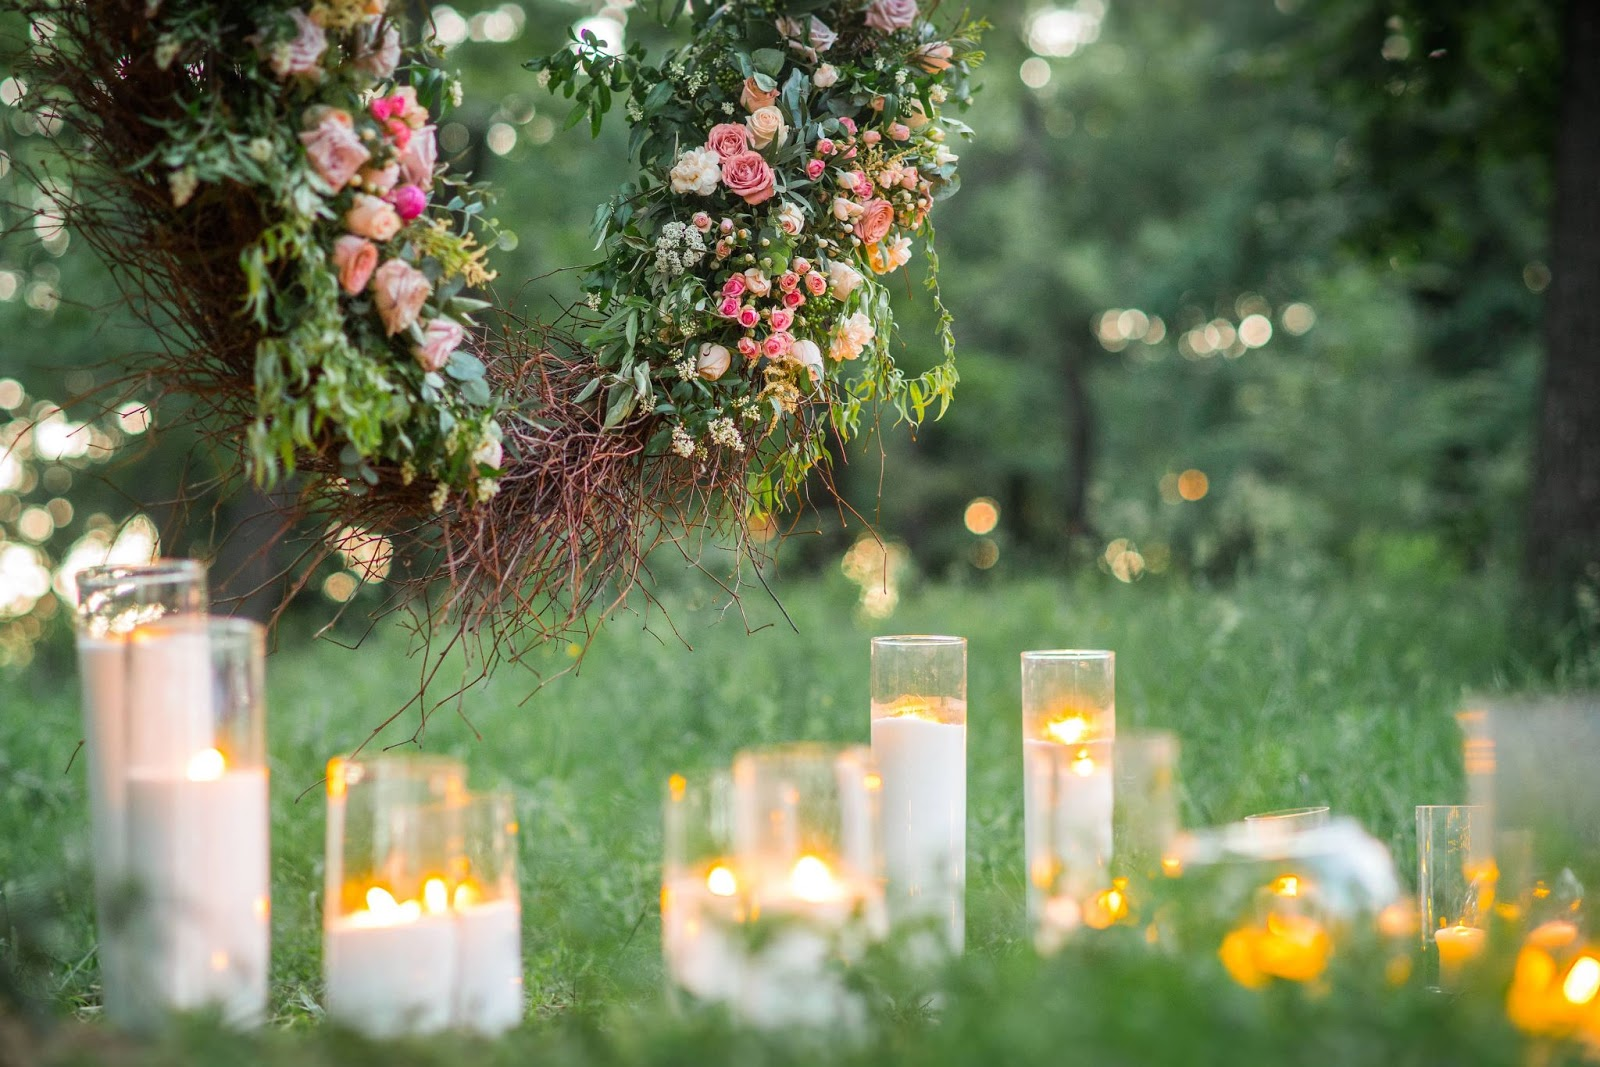 White candles and a decorative floral wreath at a casual wedding venue.